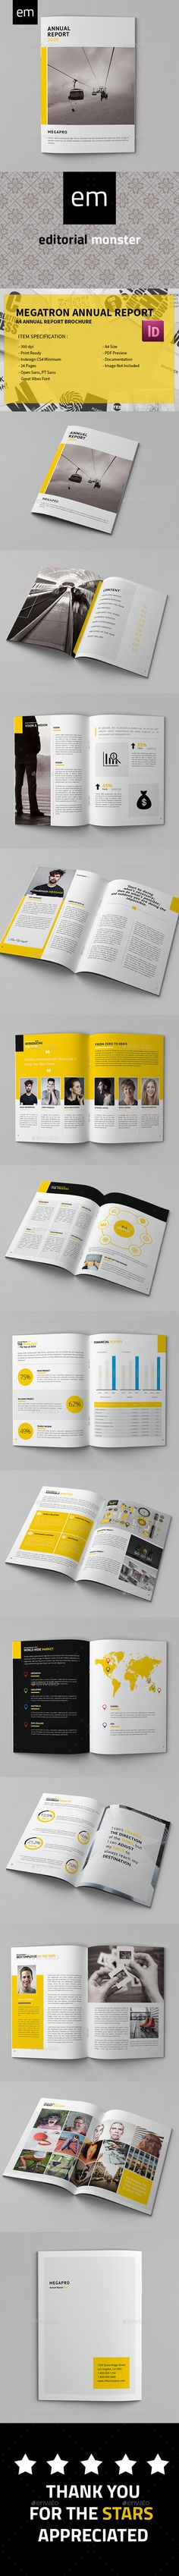 Megatron - Annual Report Template InDesign INDD. Download here: http://graphicriver.net/item/megatron-annual-report/14603339?ref=ksioks